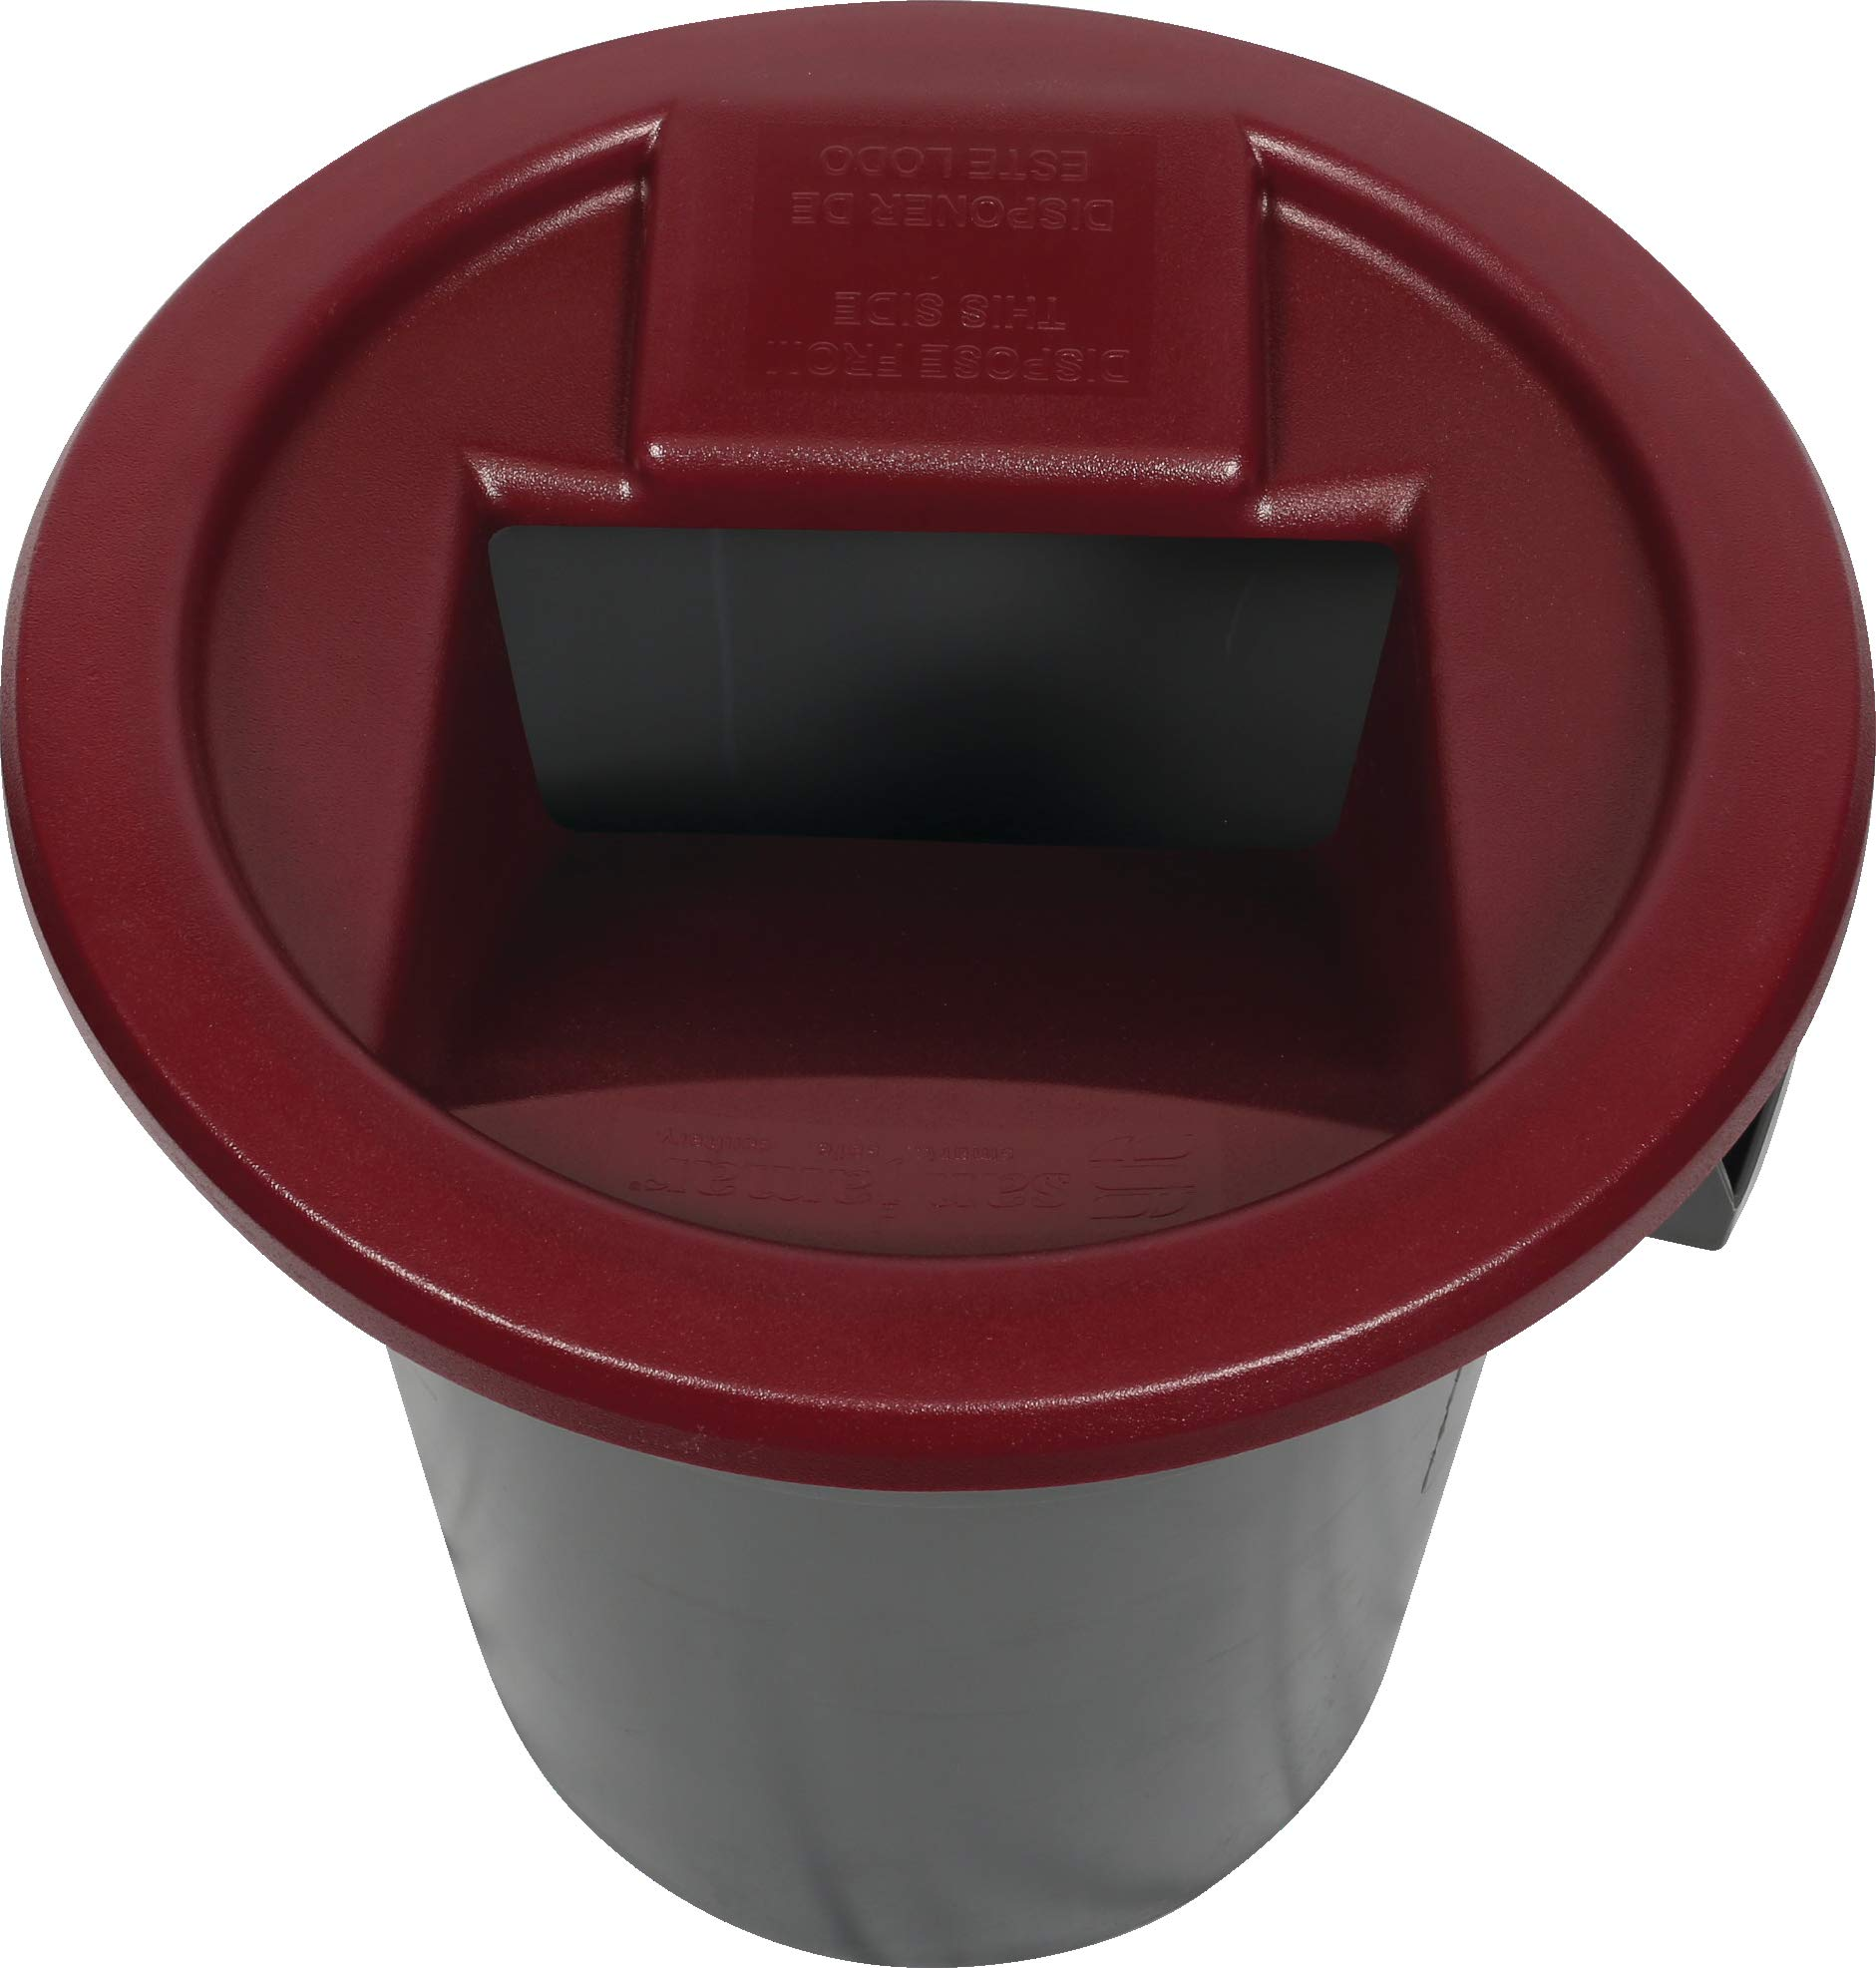 San Jamar KA3244 Katchall Rugged Round Retriever for 32 and 44 Gallon Waste Cans, Red